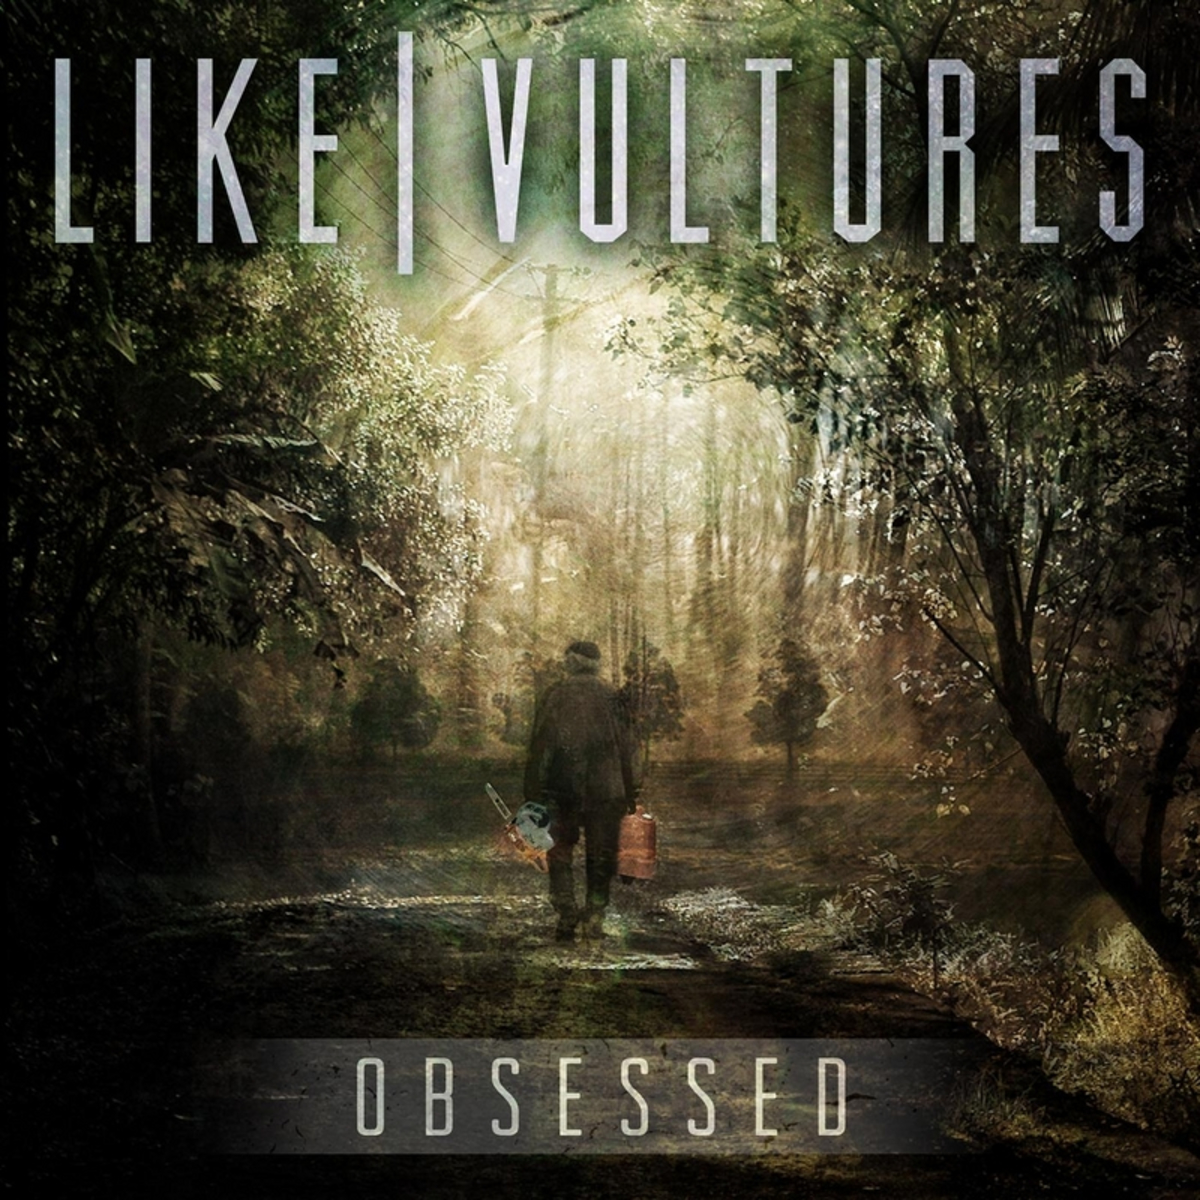 Like Vultures - Obsessed [EP] (2012)